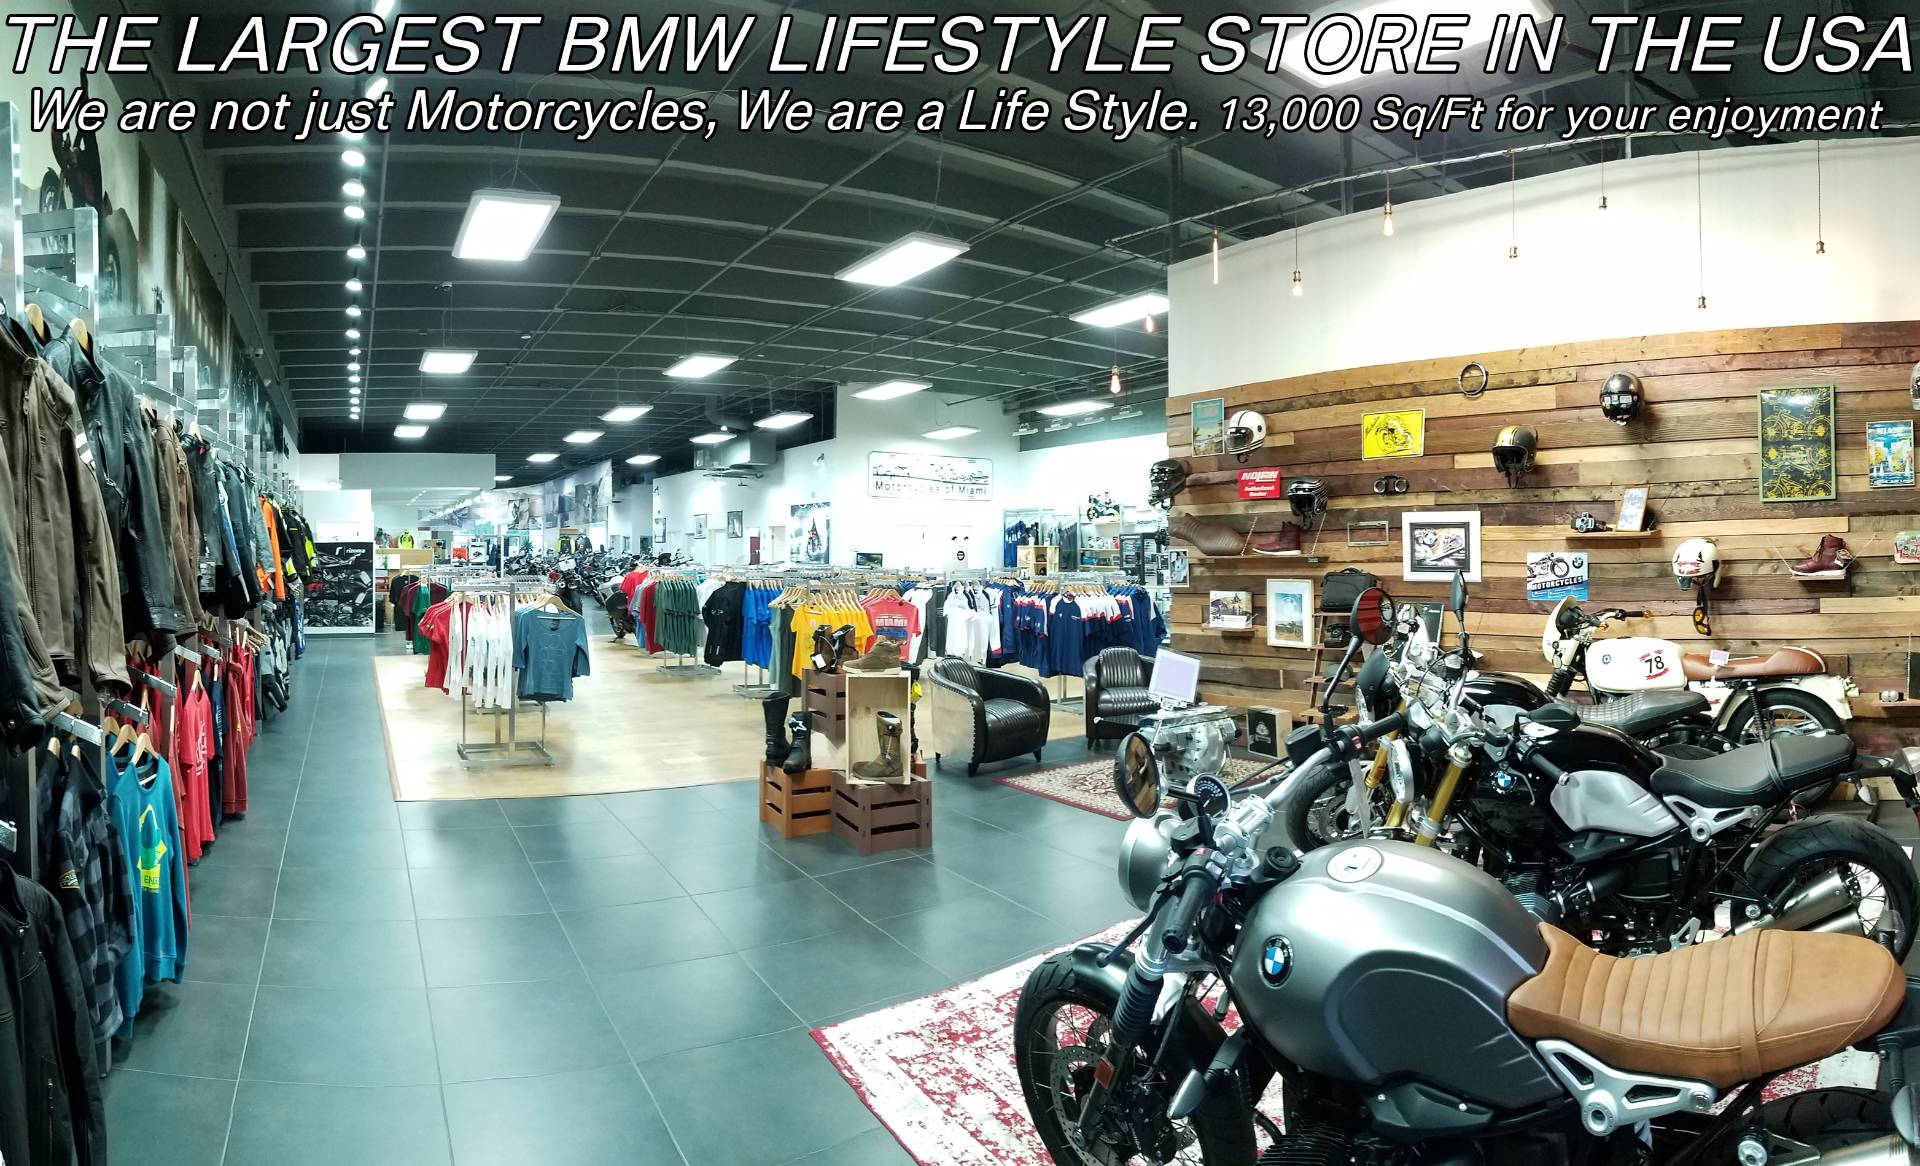 New 2019 BMW F 750 GS for sale, BMW F 750GS for sale, BMW Motorcycle F750GS, new BMW 750, Dual, BMW - Photo 21